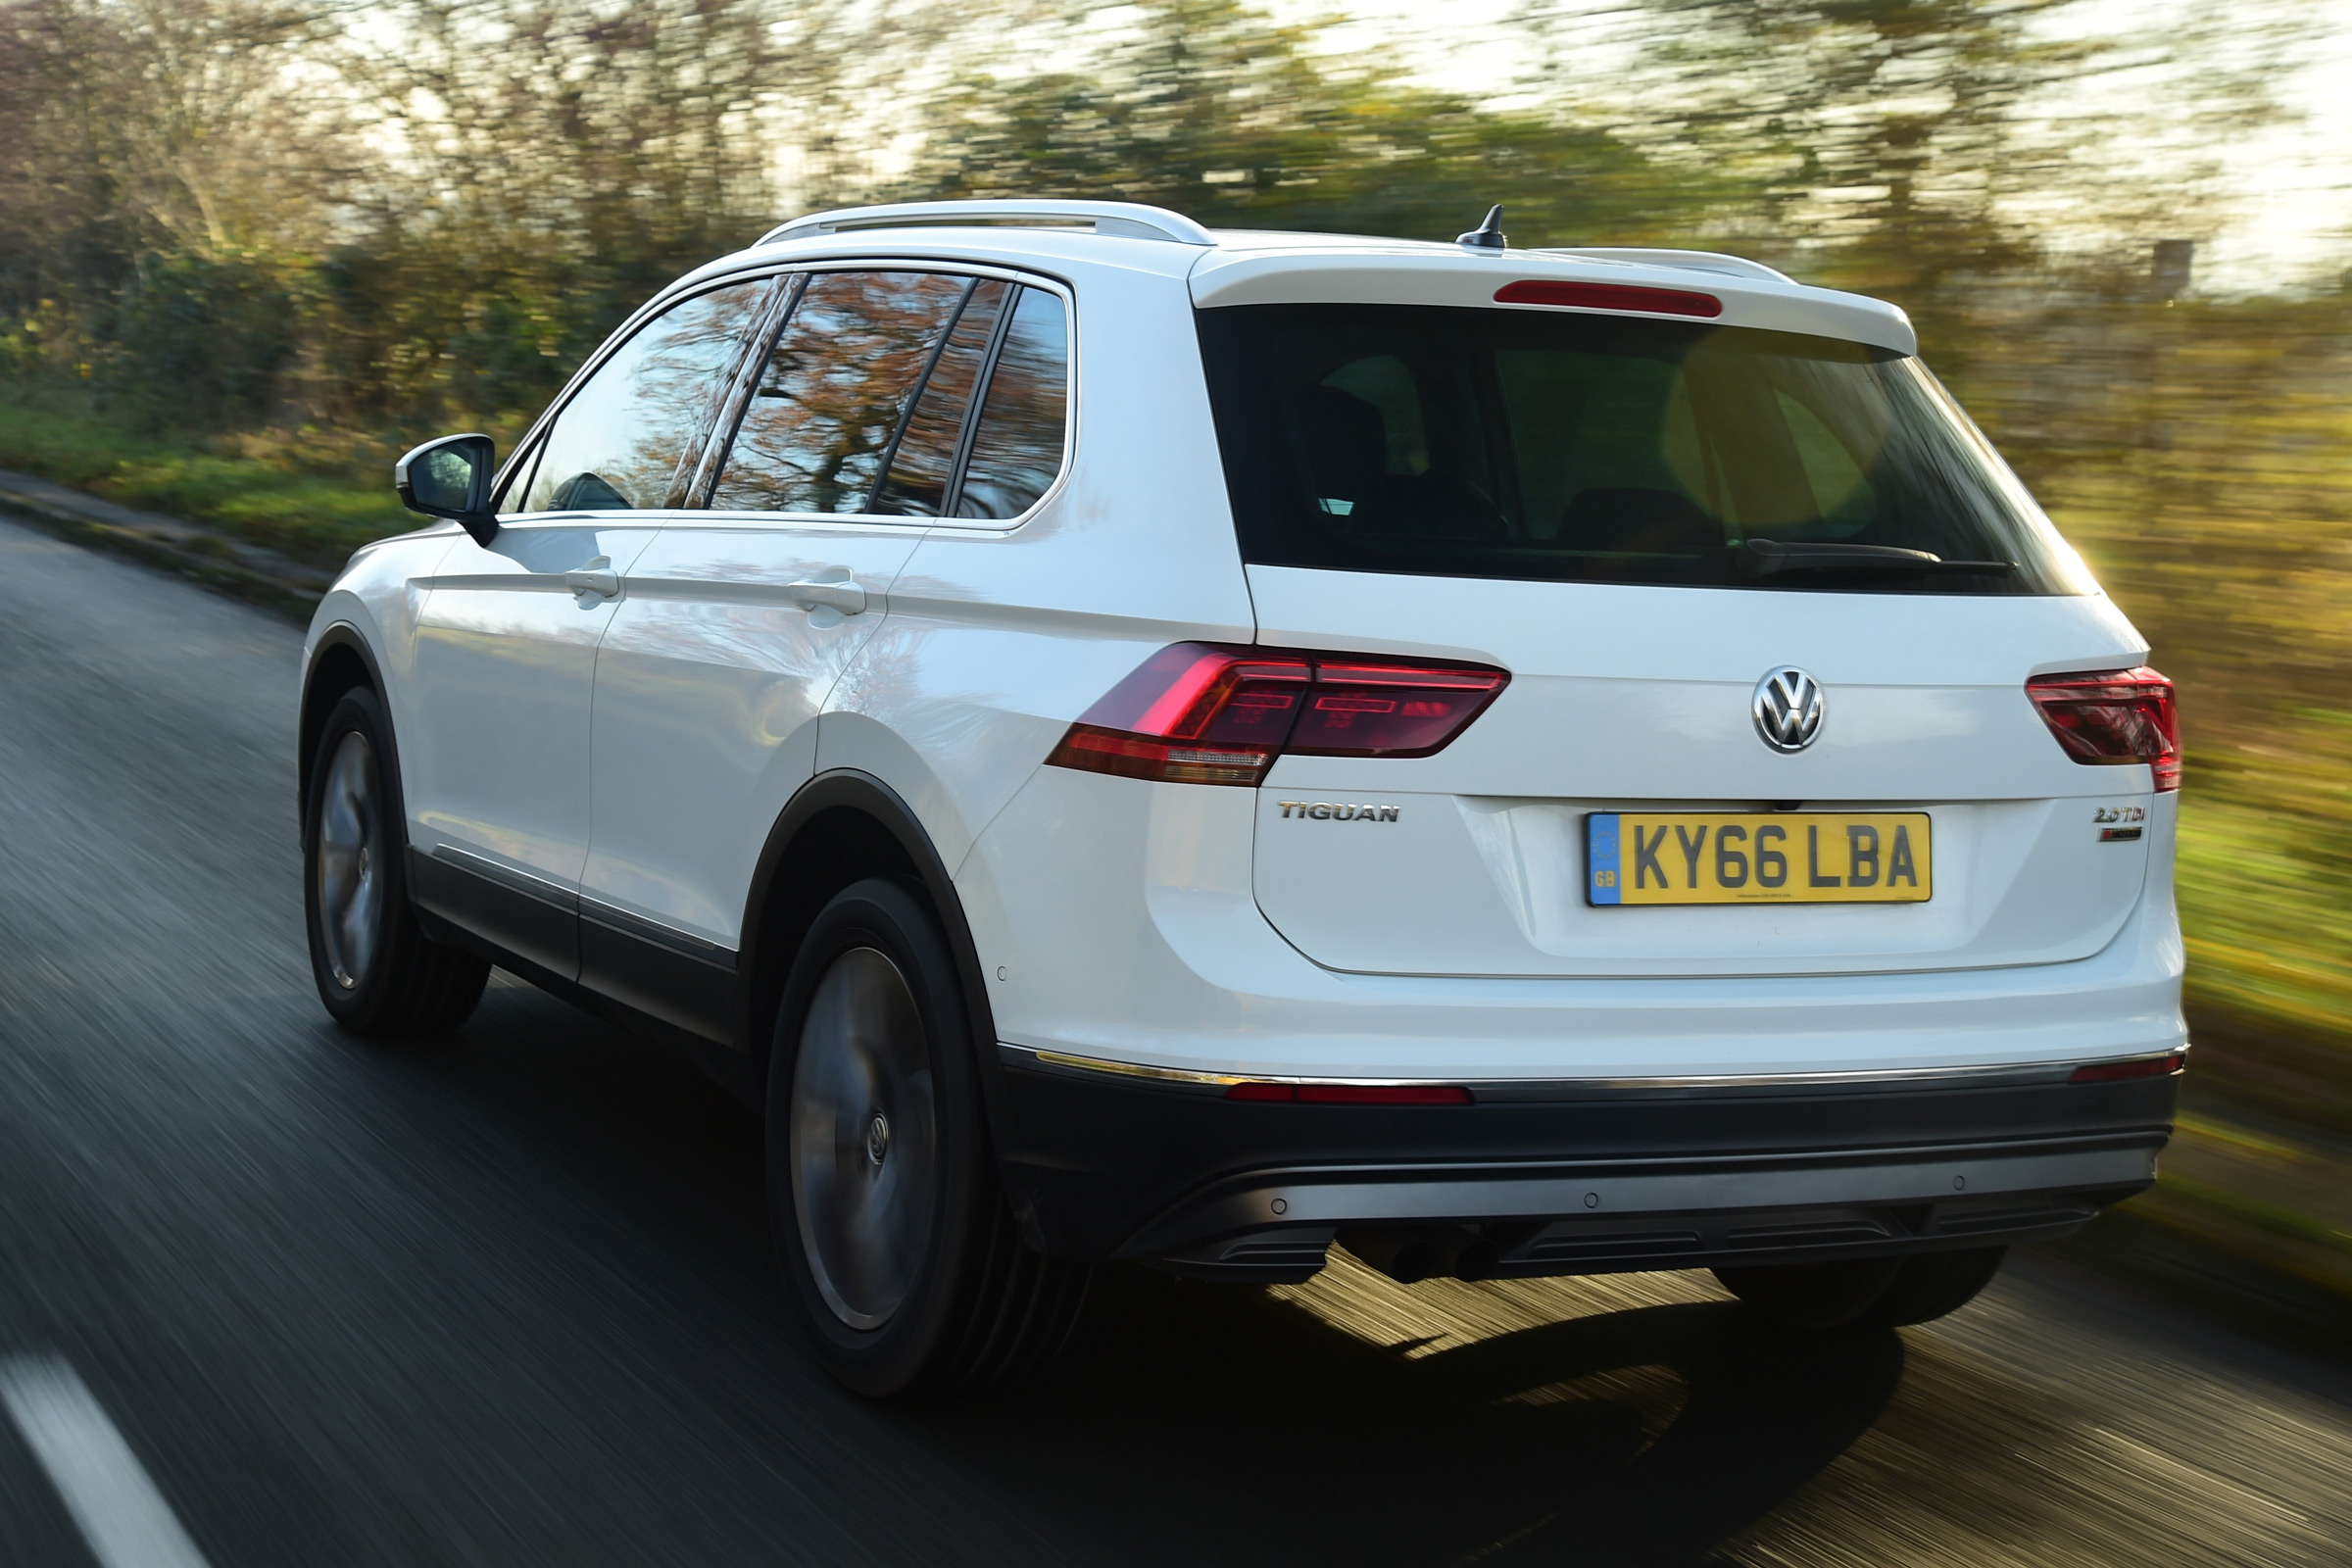 2017 Volkswagen Tiguan White Test Drive Rear And Side View (Photo 26 of 27)